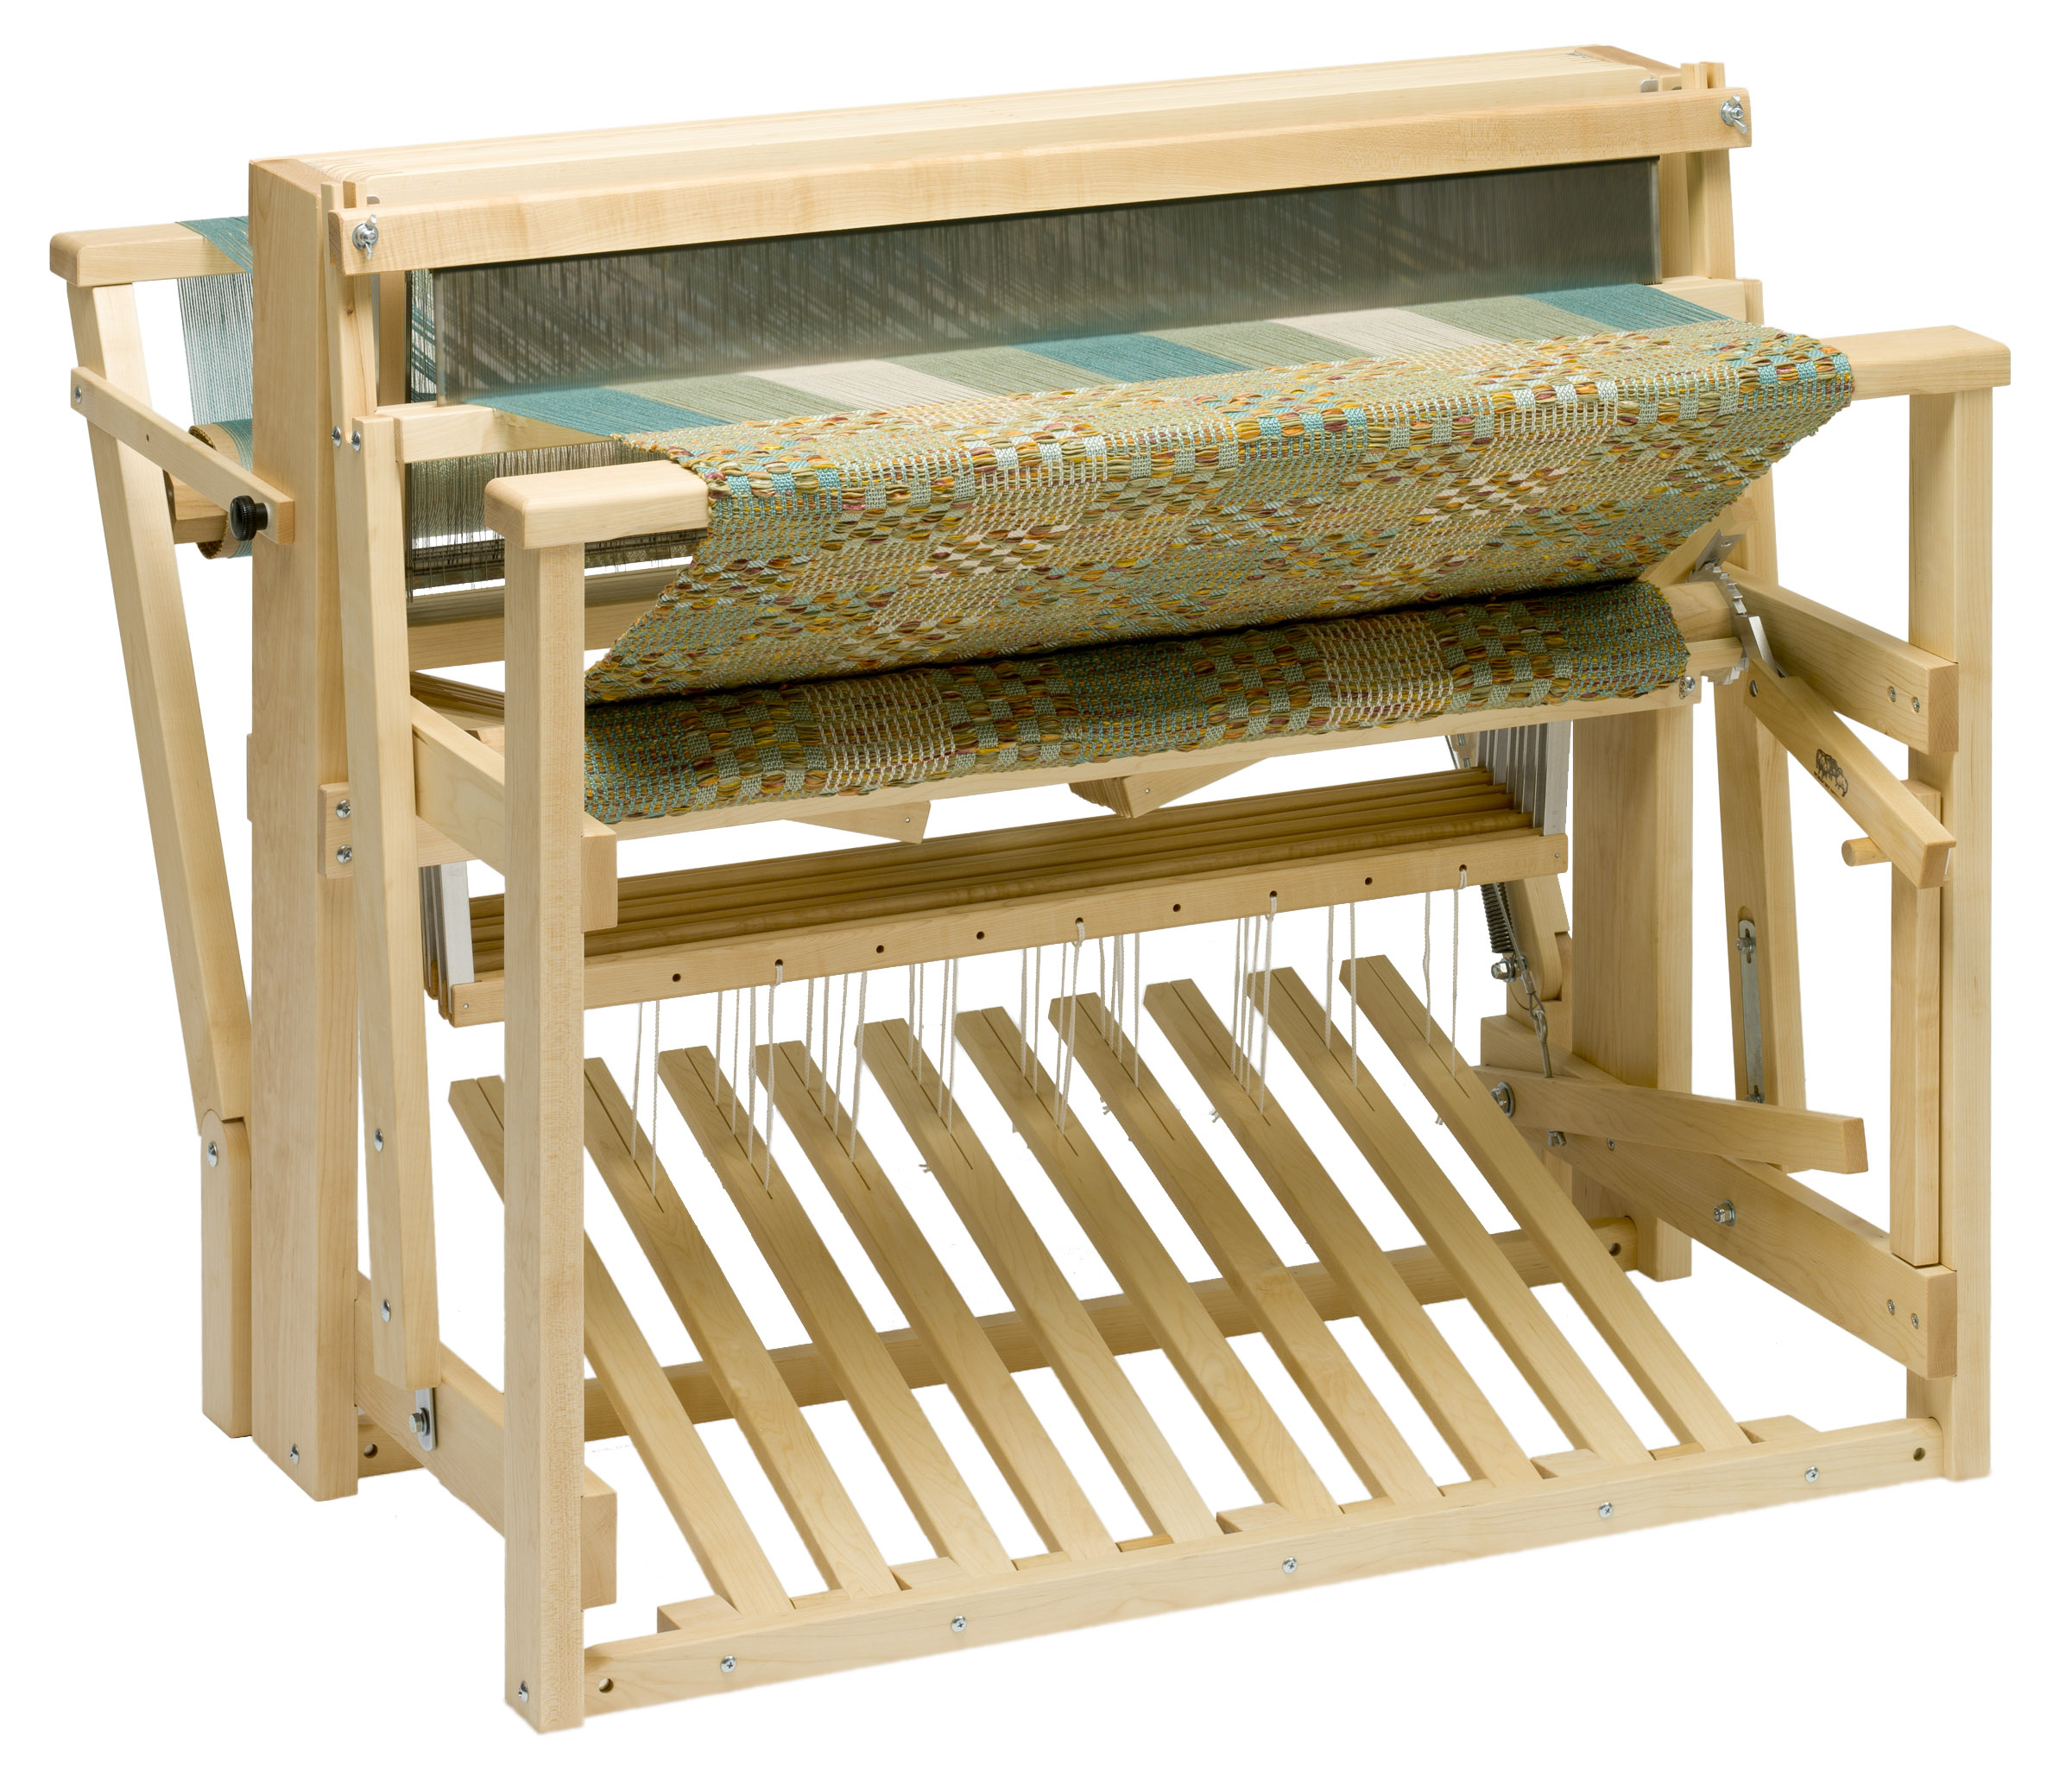 Floor Looms For Sale: Floor Looms For Sale